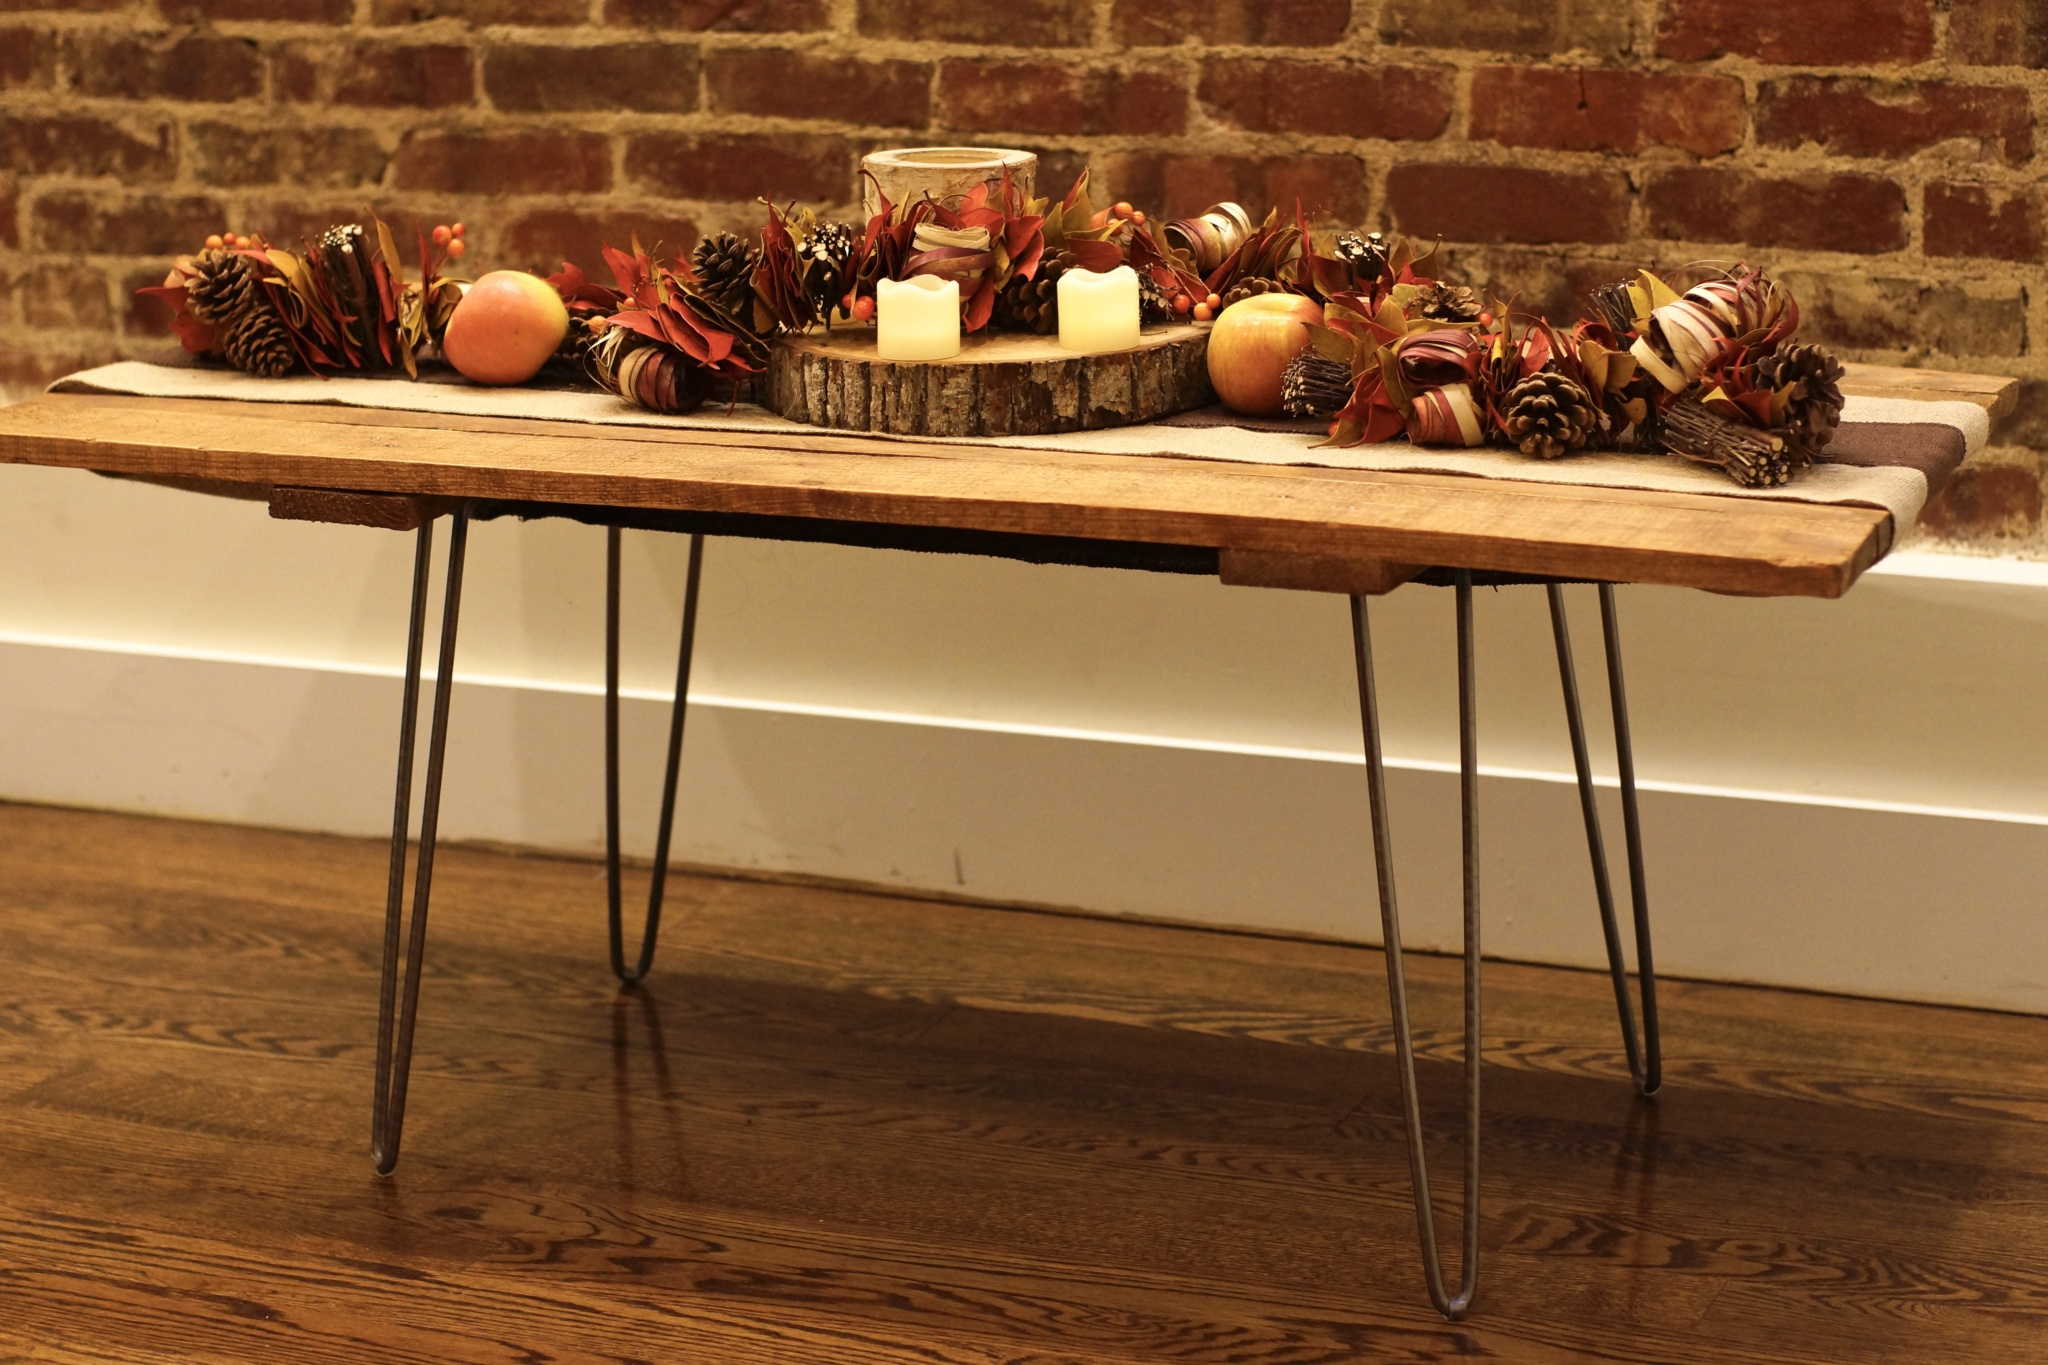 DIY Pallet Coffee Table with Hairpin Legs & Fall Autumn Decor Decorations - Happy Thanksgiving